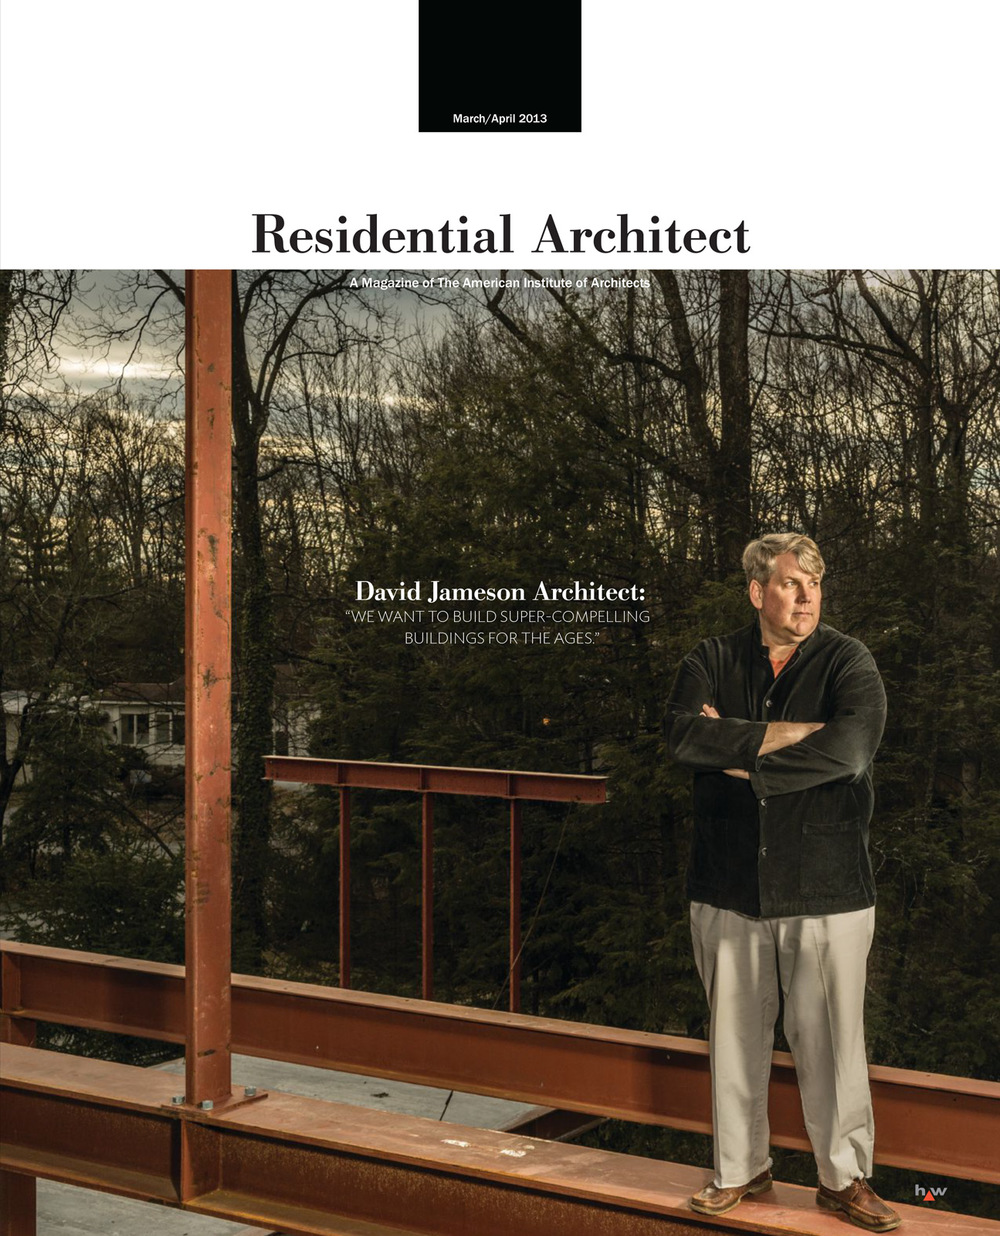 Architect David Jameson